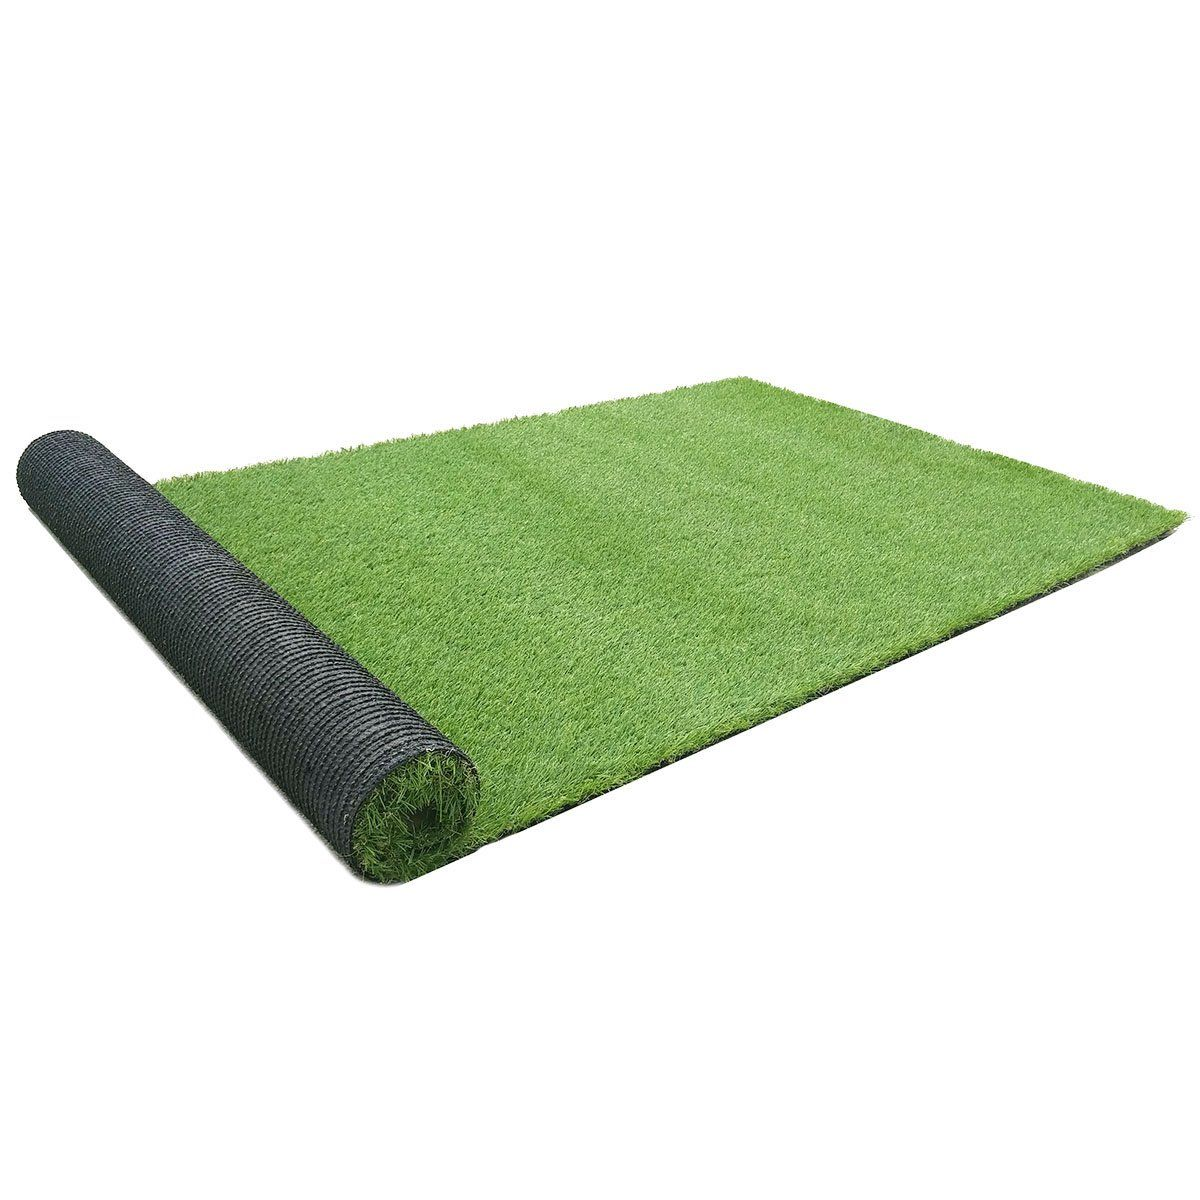 fake grass carpet. RURALITY 3.3 Ft X 7 Ft,1.38-inch Blades Artificial Grass Turf Fake Carpet For Indoor Or Outdoor Decoration